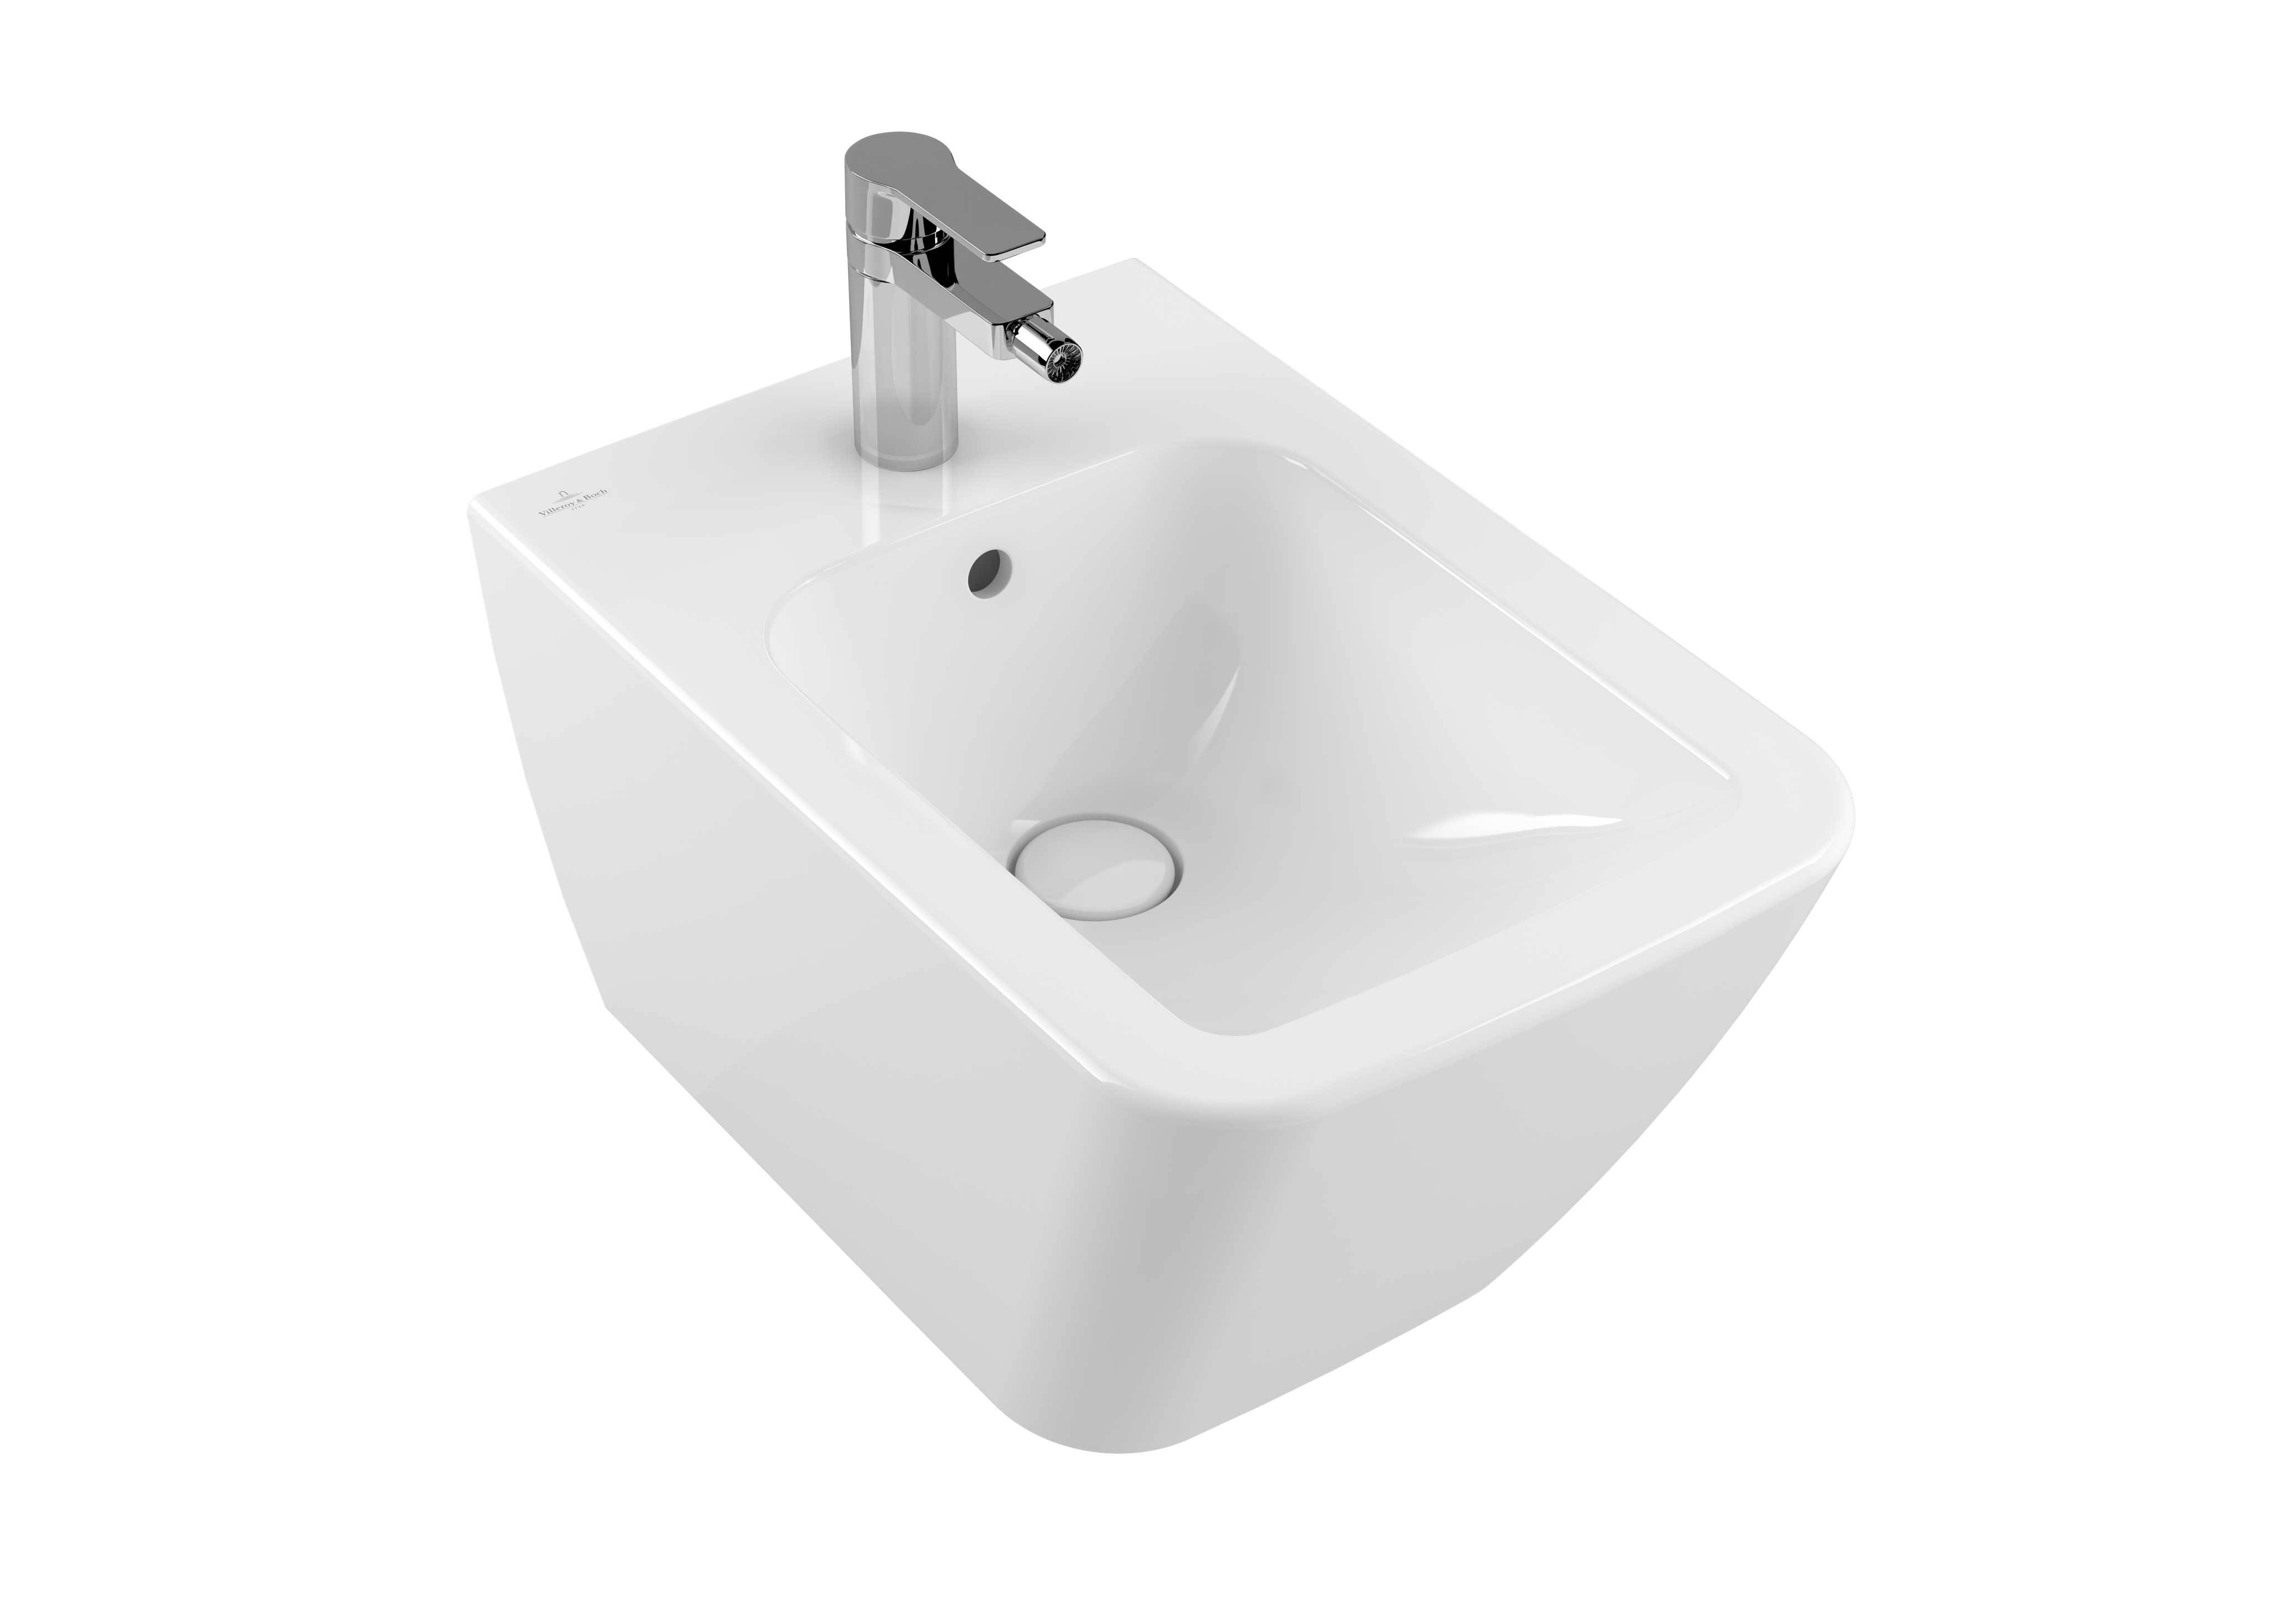 Wc Bidet Finion Von Villeroy Boch Bad Wellness Stylepark